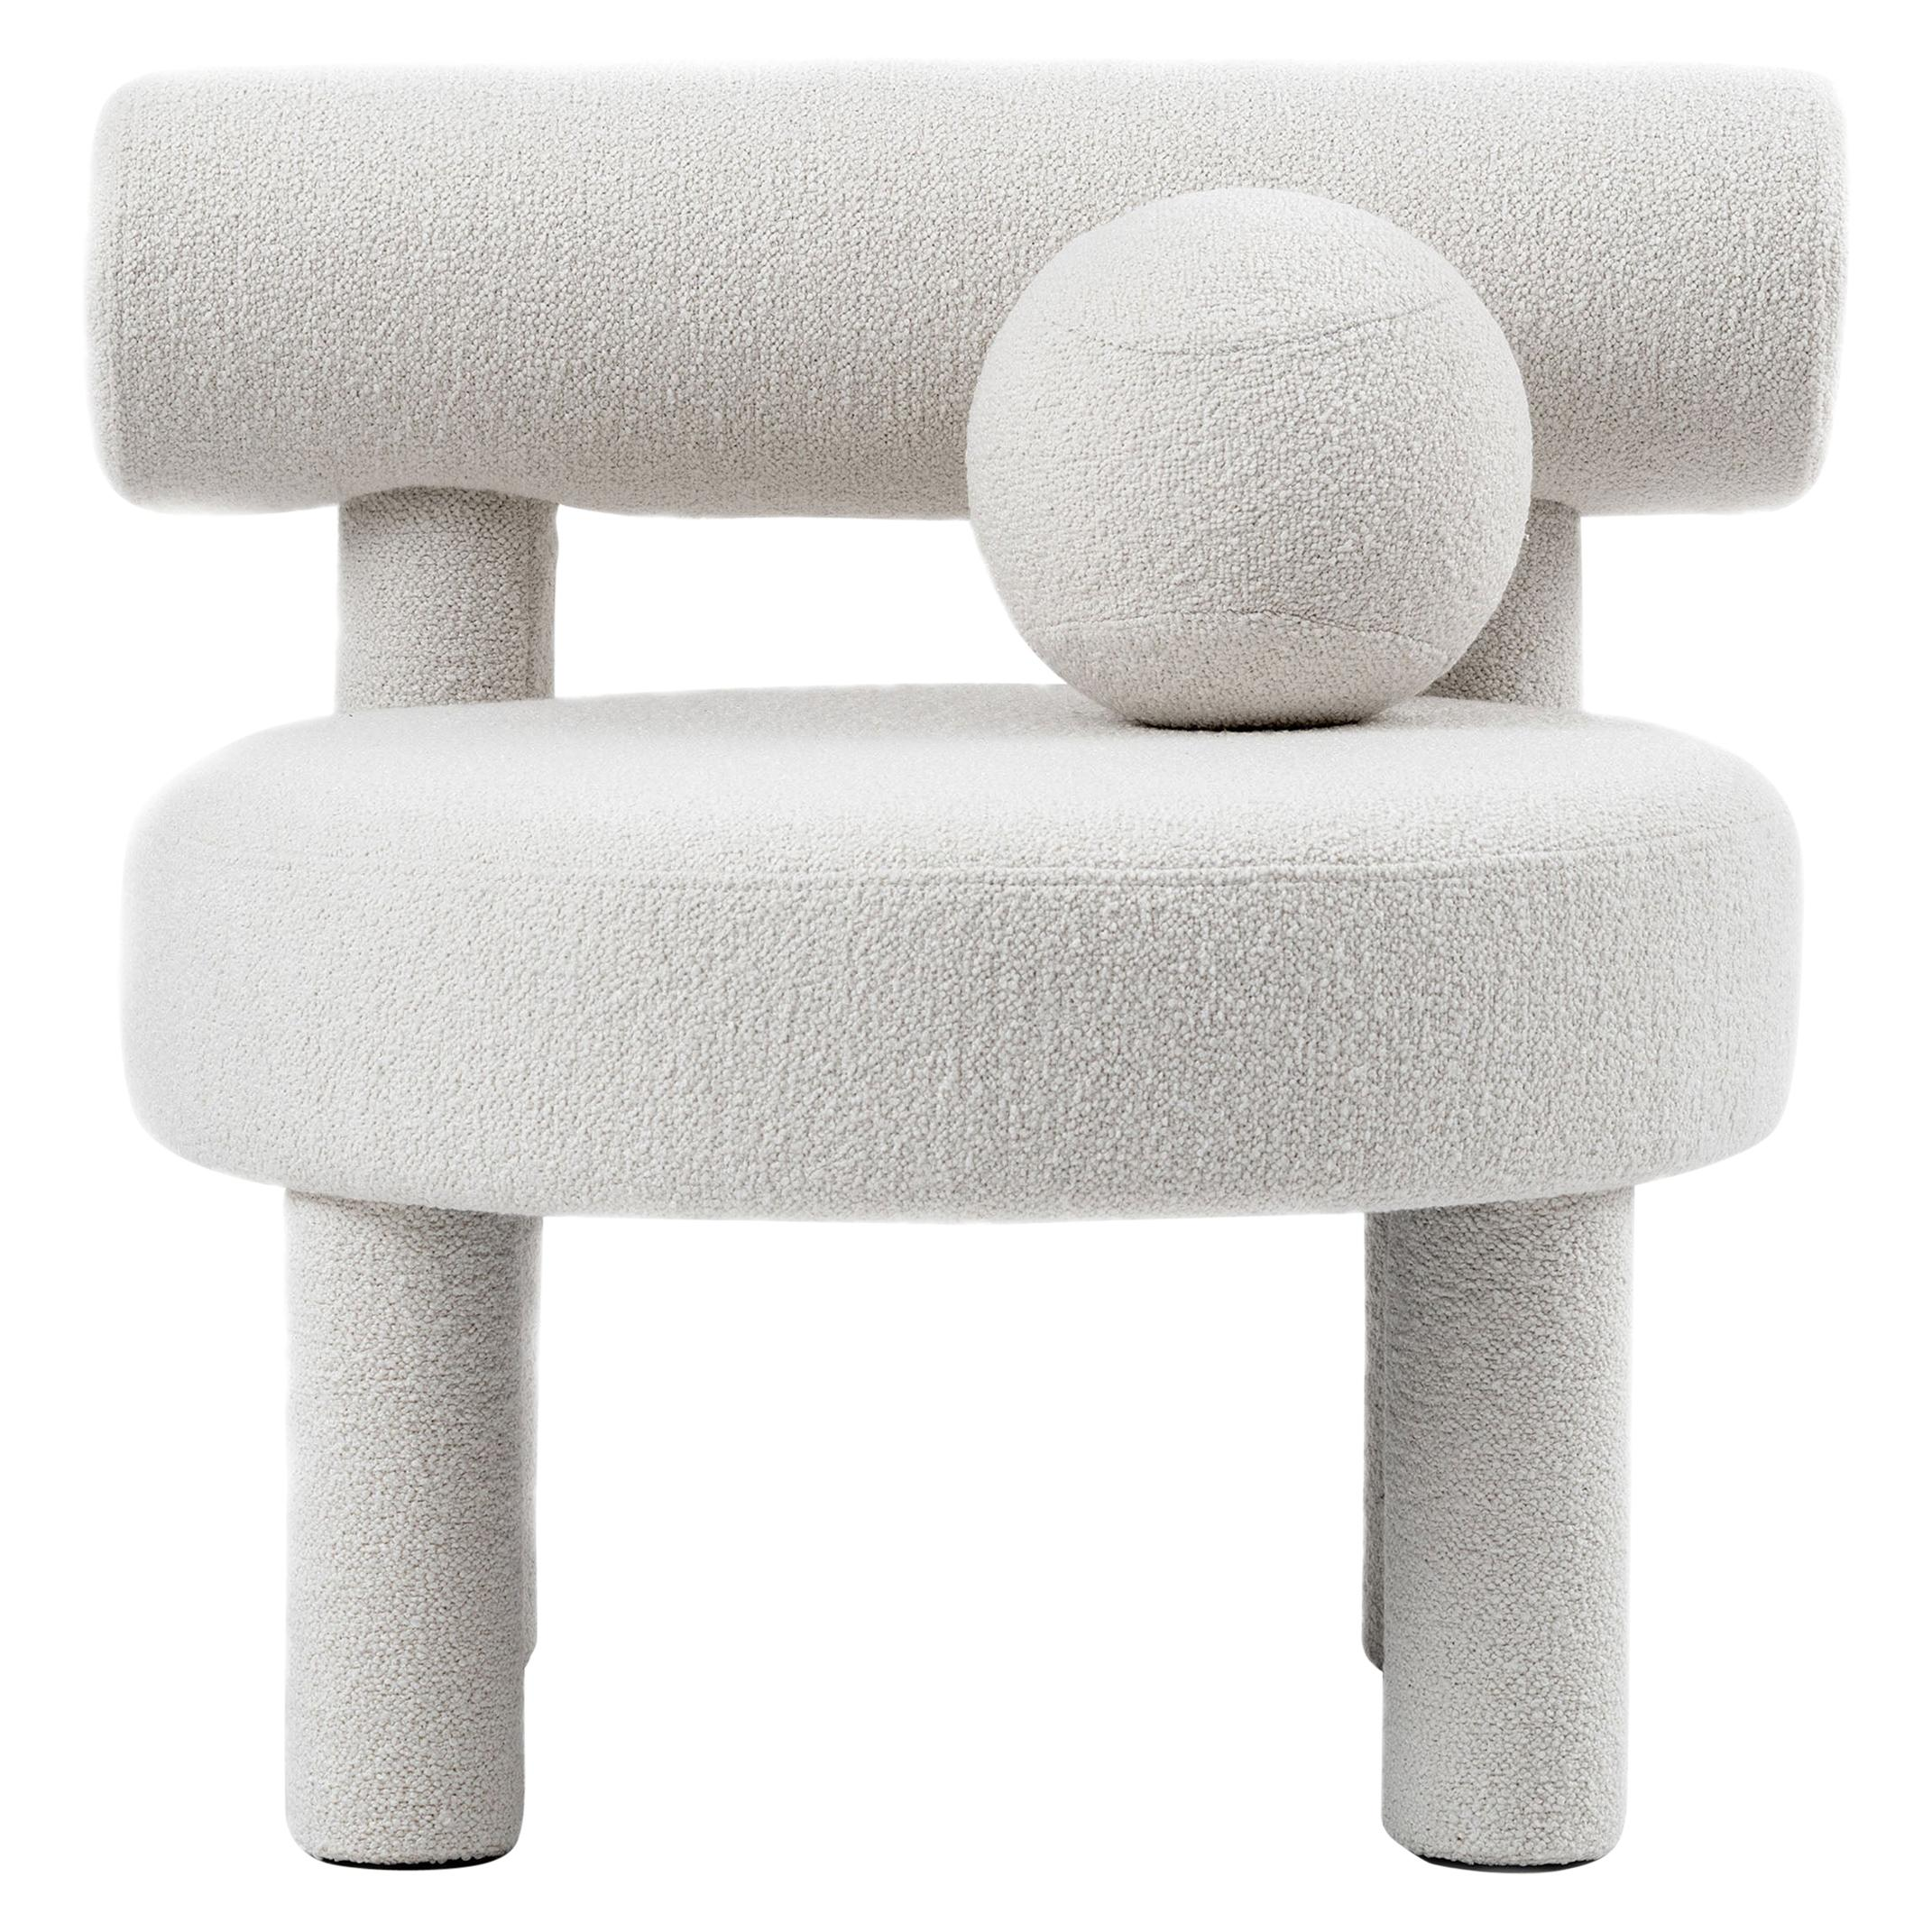 Modern Low Chair Gropius CS1 in Boucle Fabric by NOOM